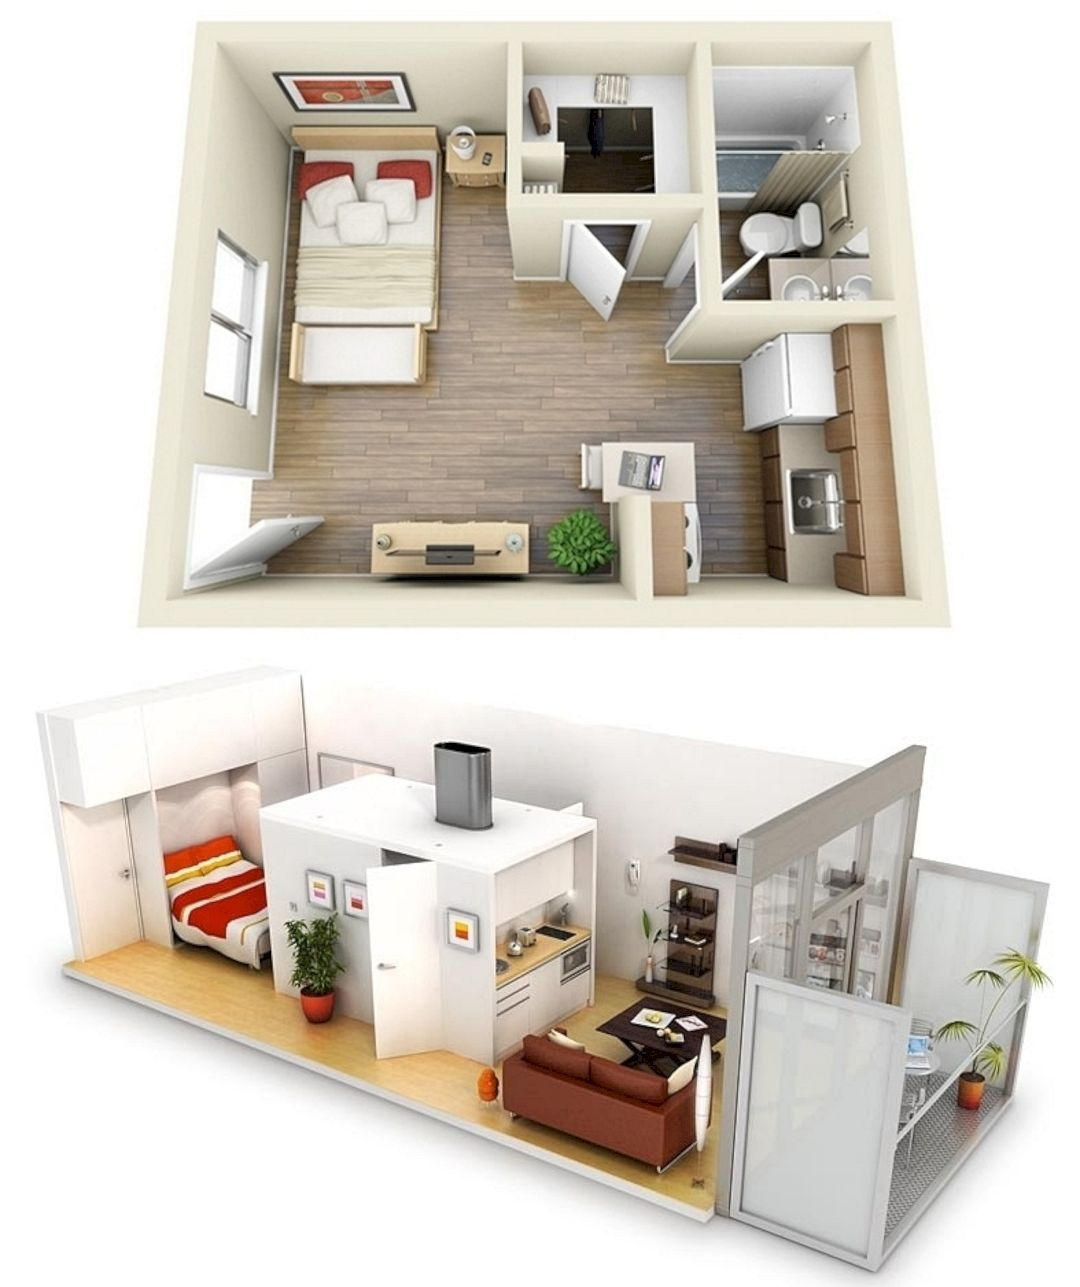 Small Apartment Floor Plans Design NIVAFLOORS